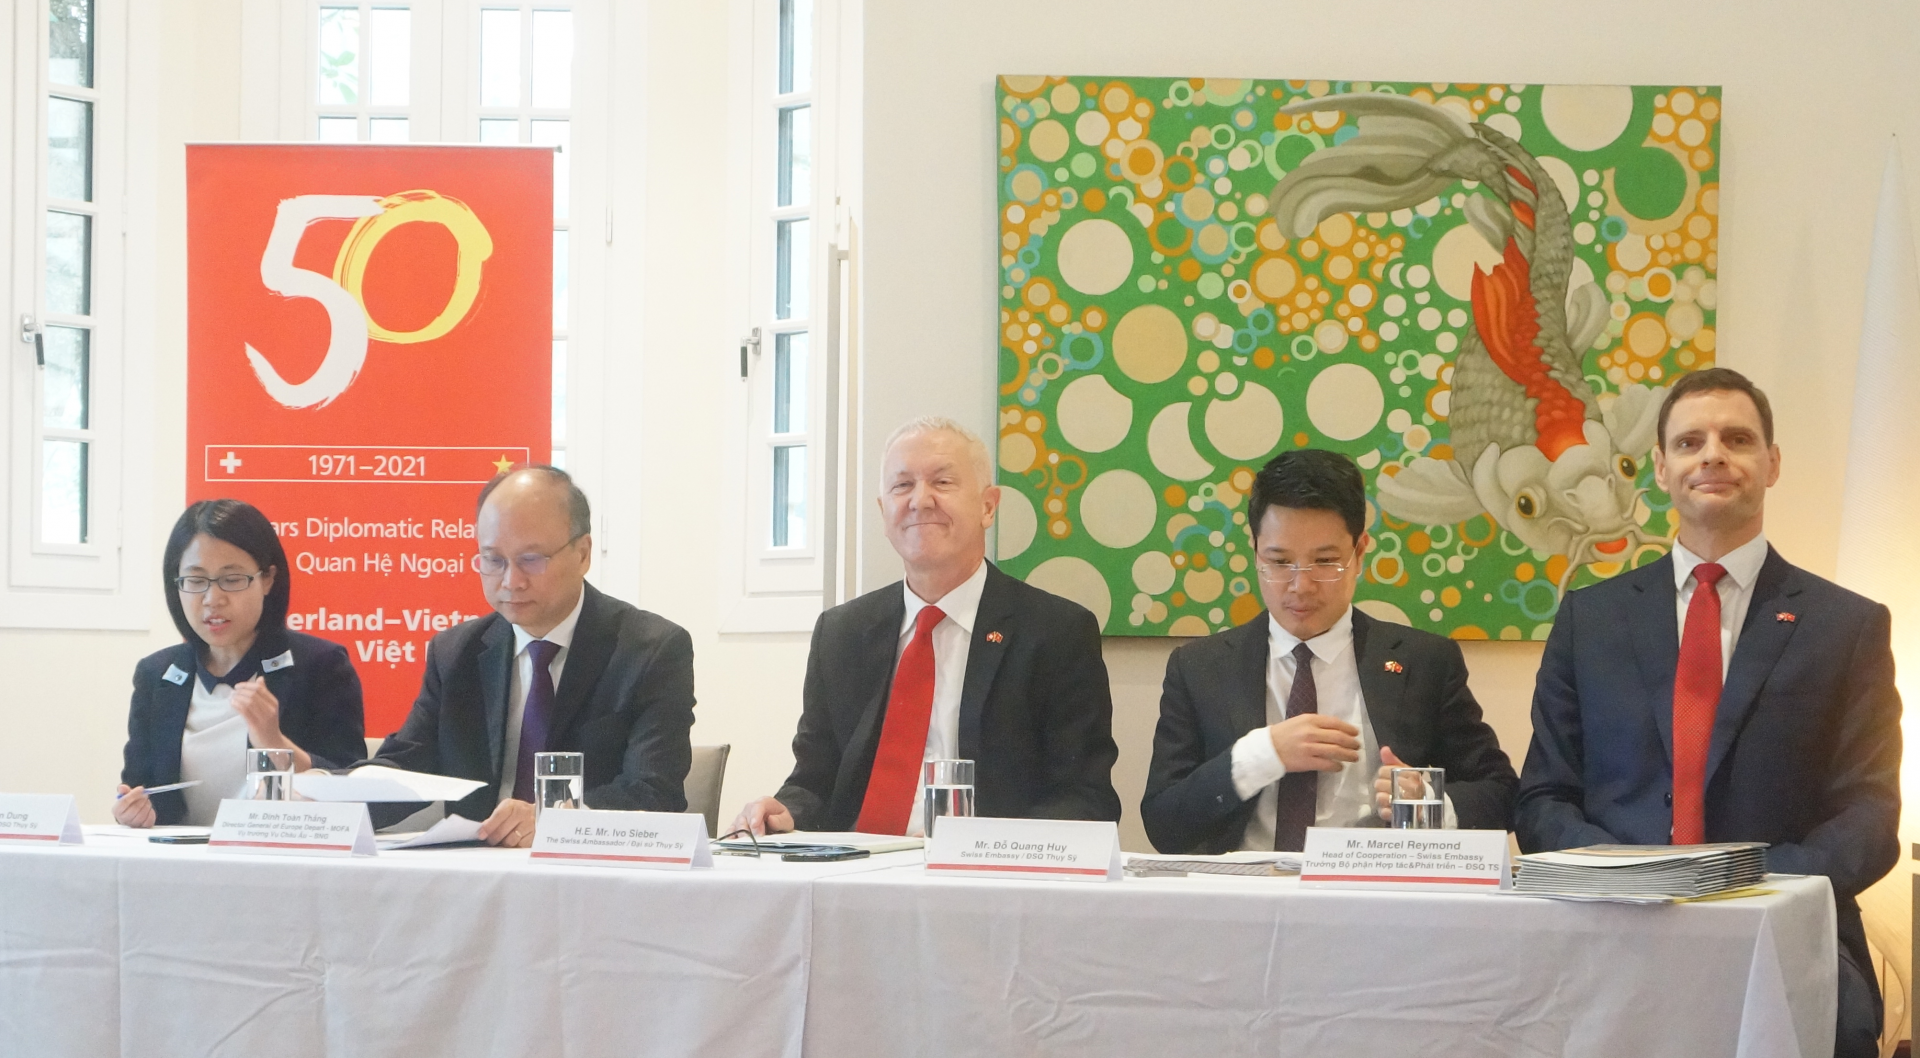 commemorations to celebrate the 50th anniversary of swiss vietnamese diplomatic relations in 2021 launched